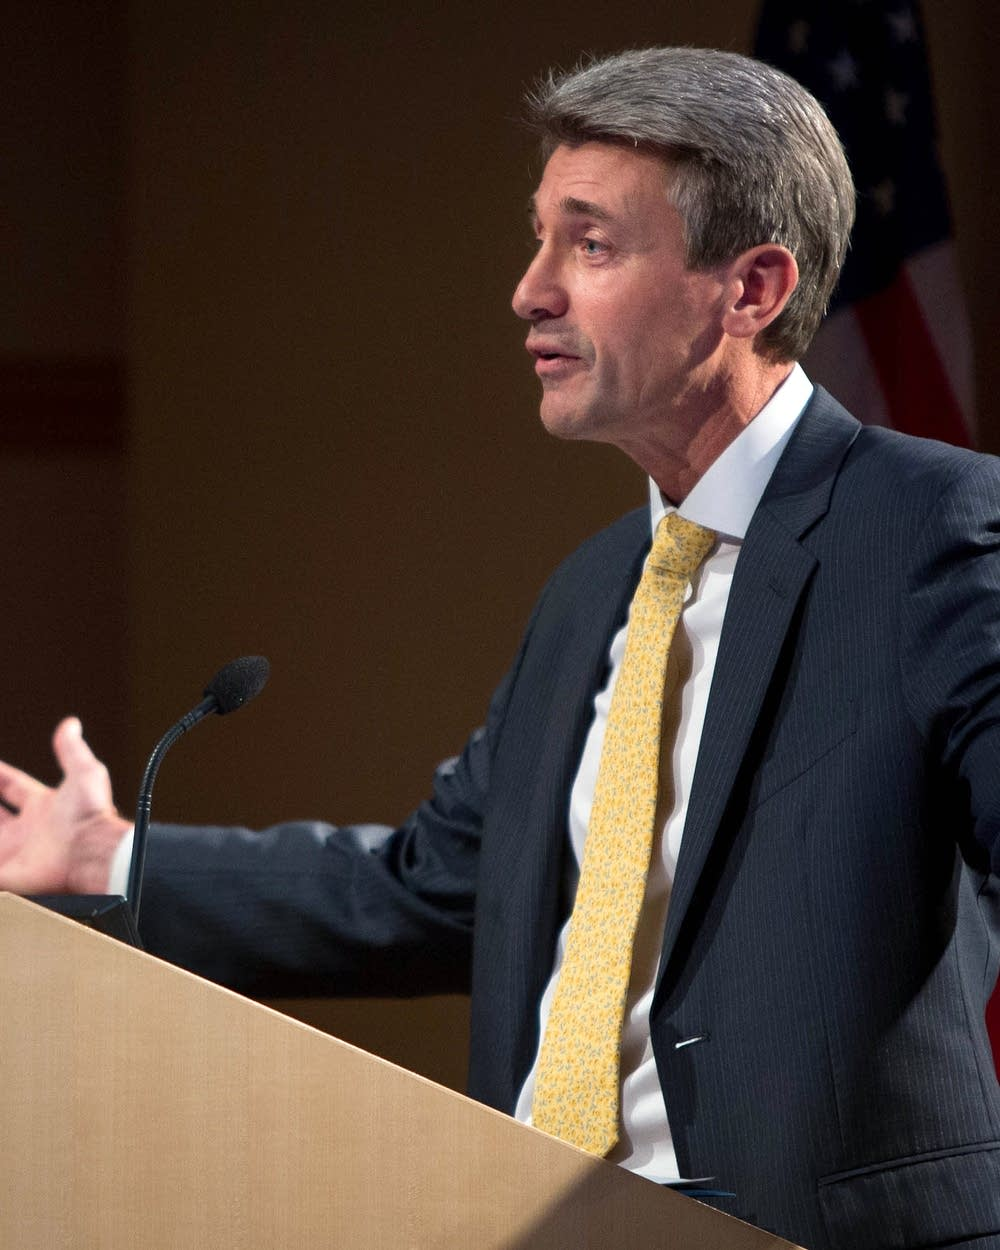 Mpls  Mayor Rybak announces city's first property tax cut in 20